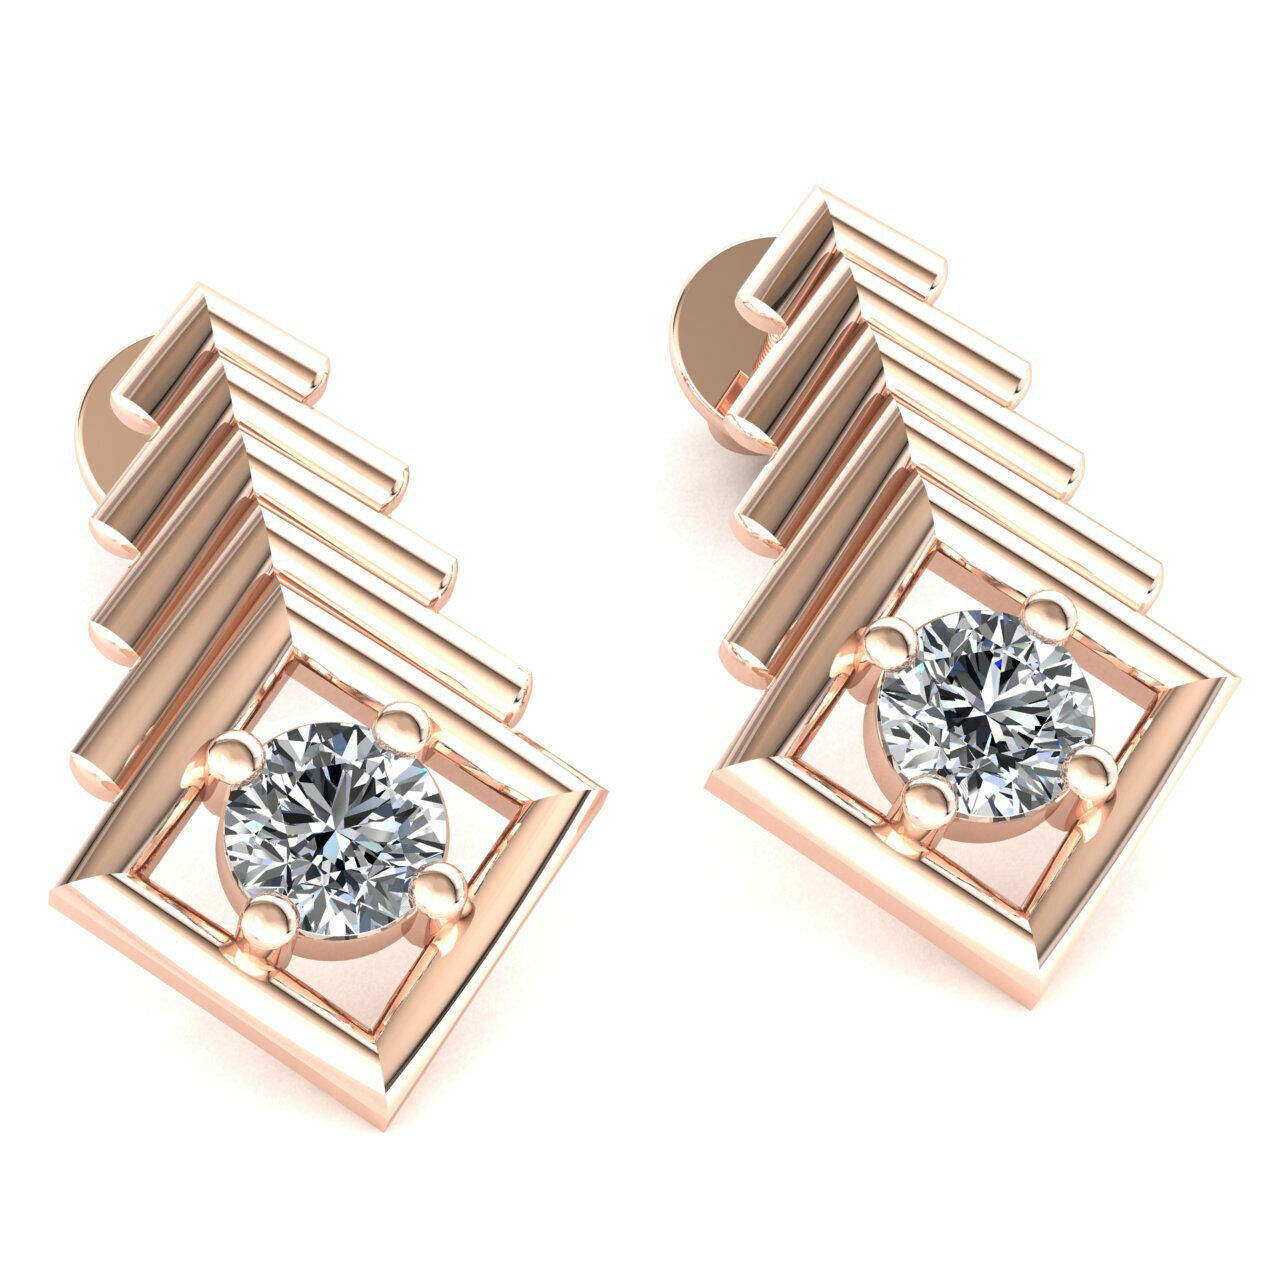 63685755a64e5 0.55ct Natural Round Cut gold 10K Earrings Solitaire Square Ladies ...